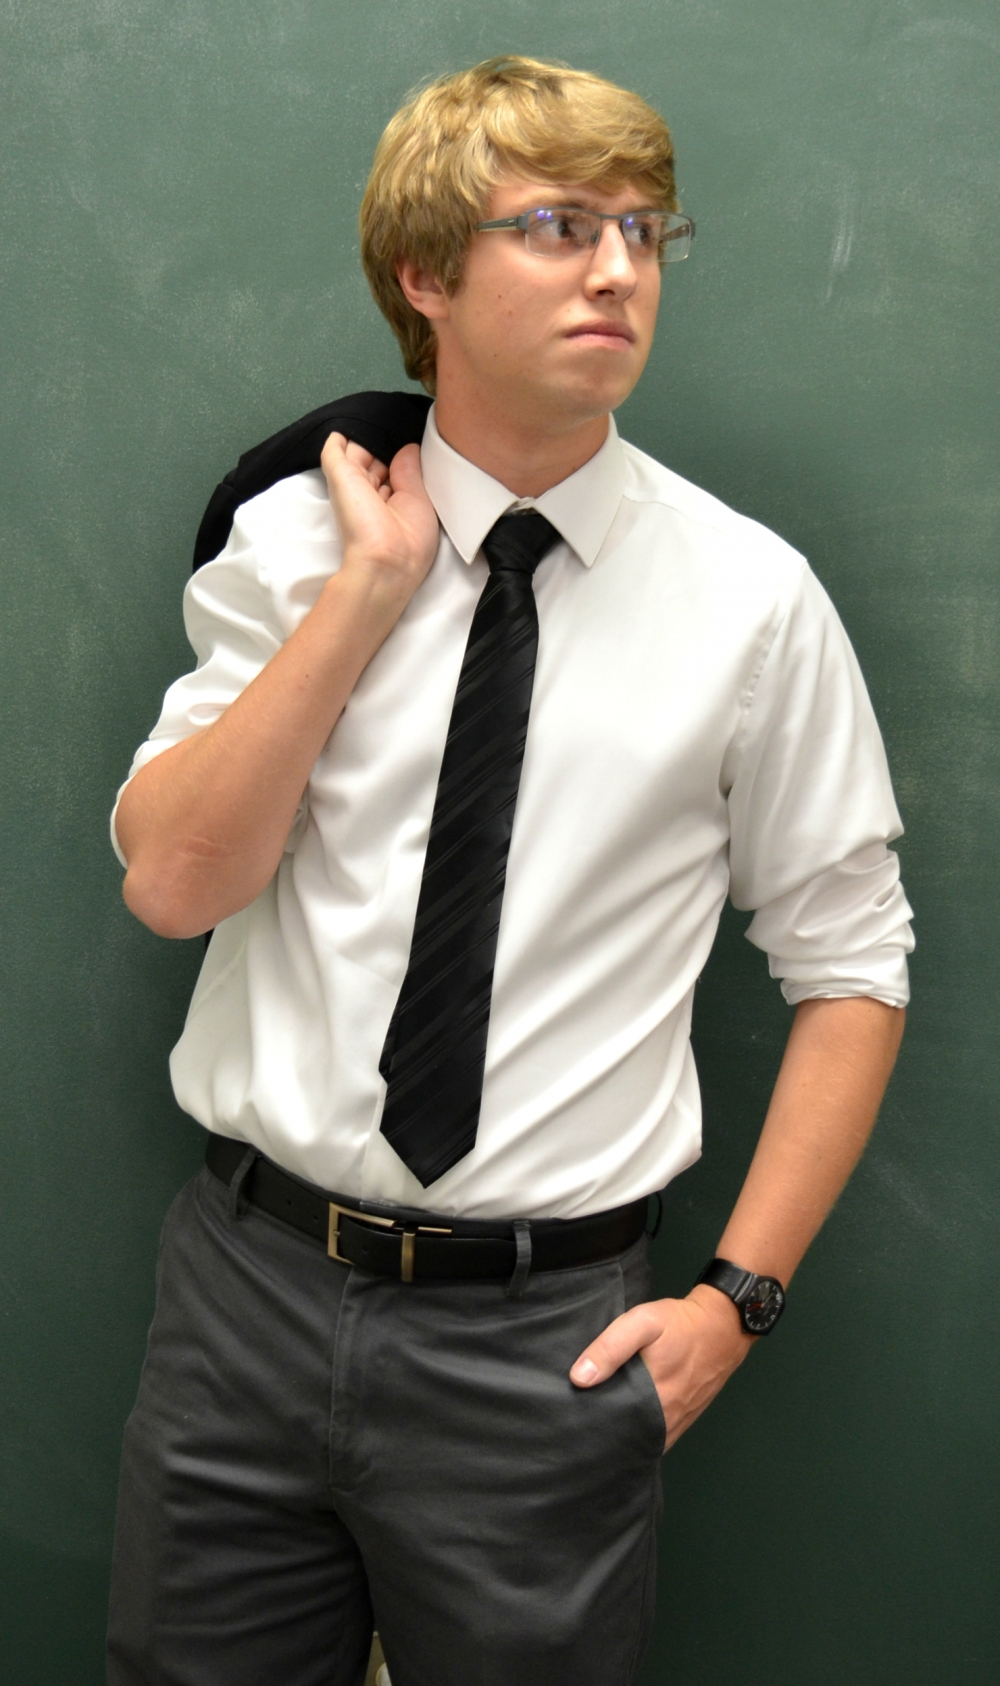 dress code in college And business dress codes, where you can combine them into a smart ensemble this is your opportunity to pair denim with a sport coat khakis,.